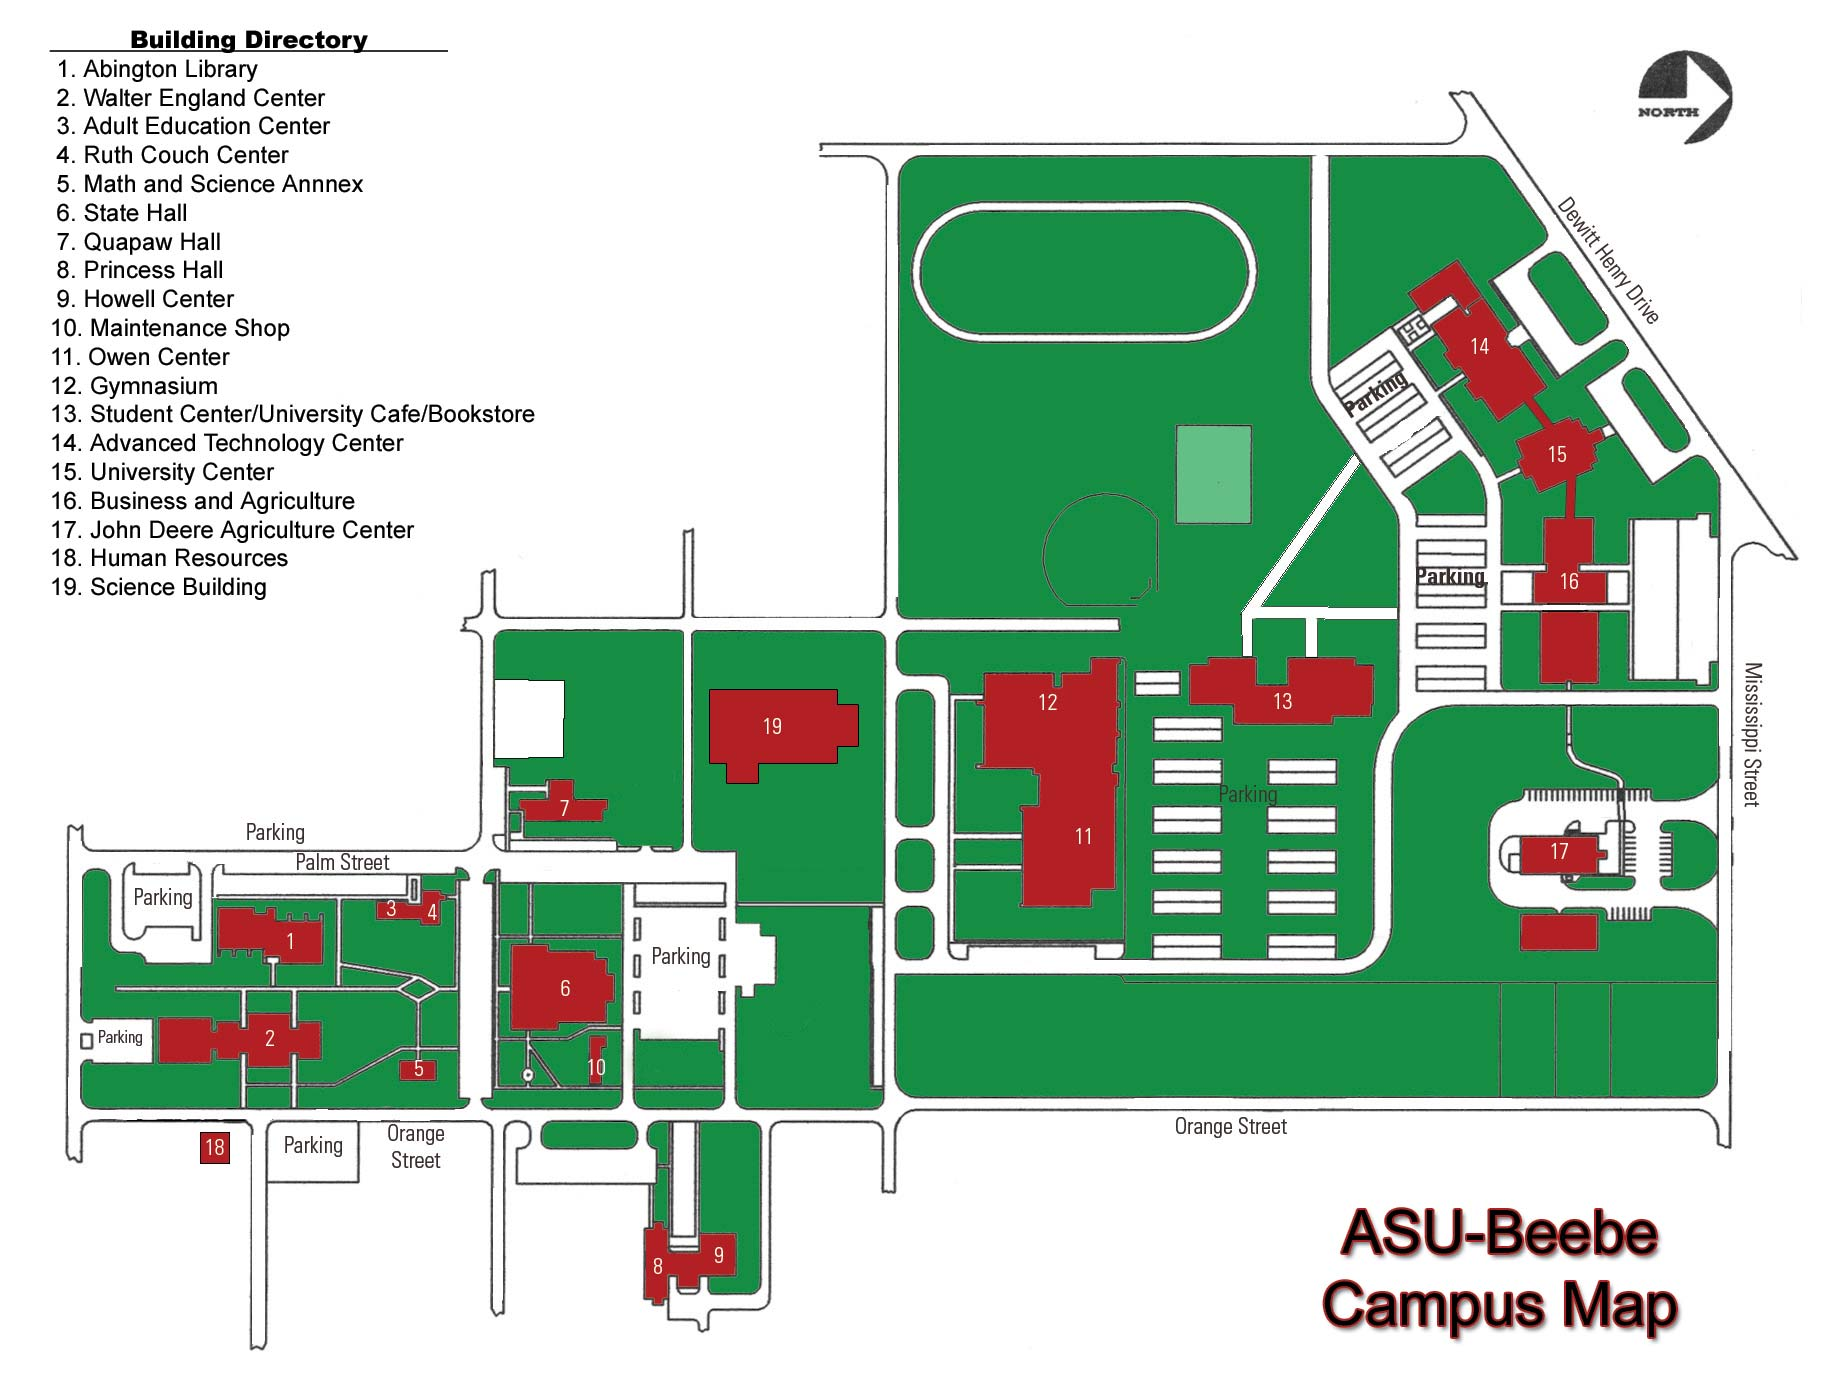 University beebe cus map see map details from asub edu created 2007